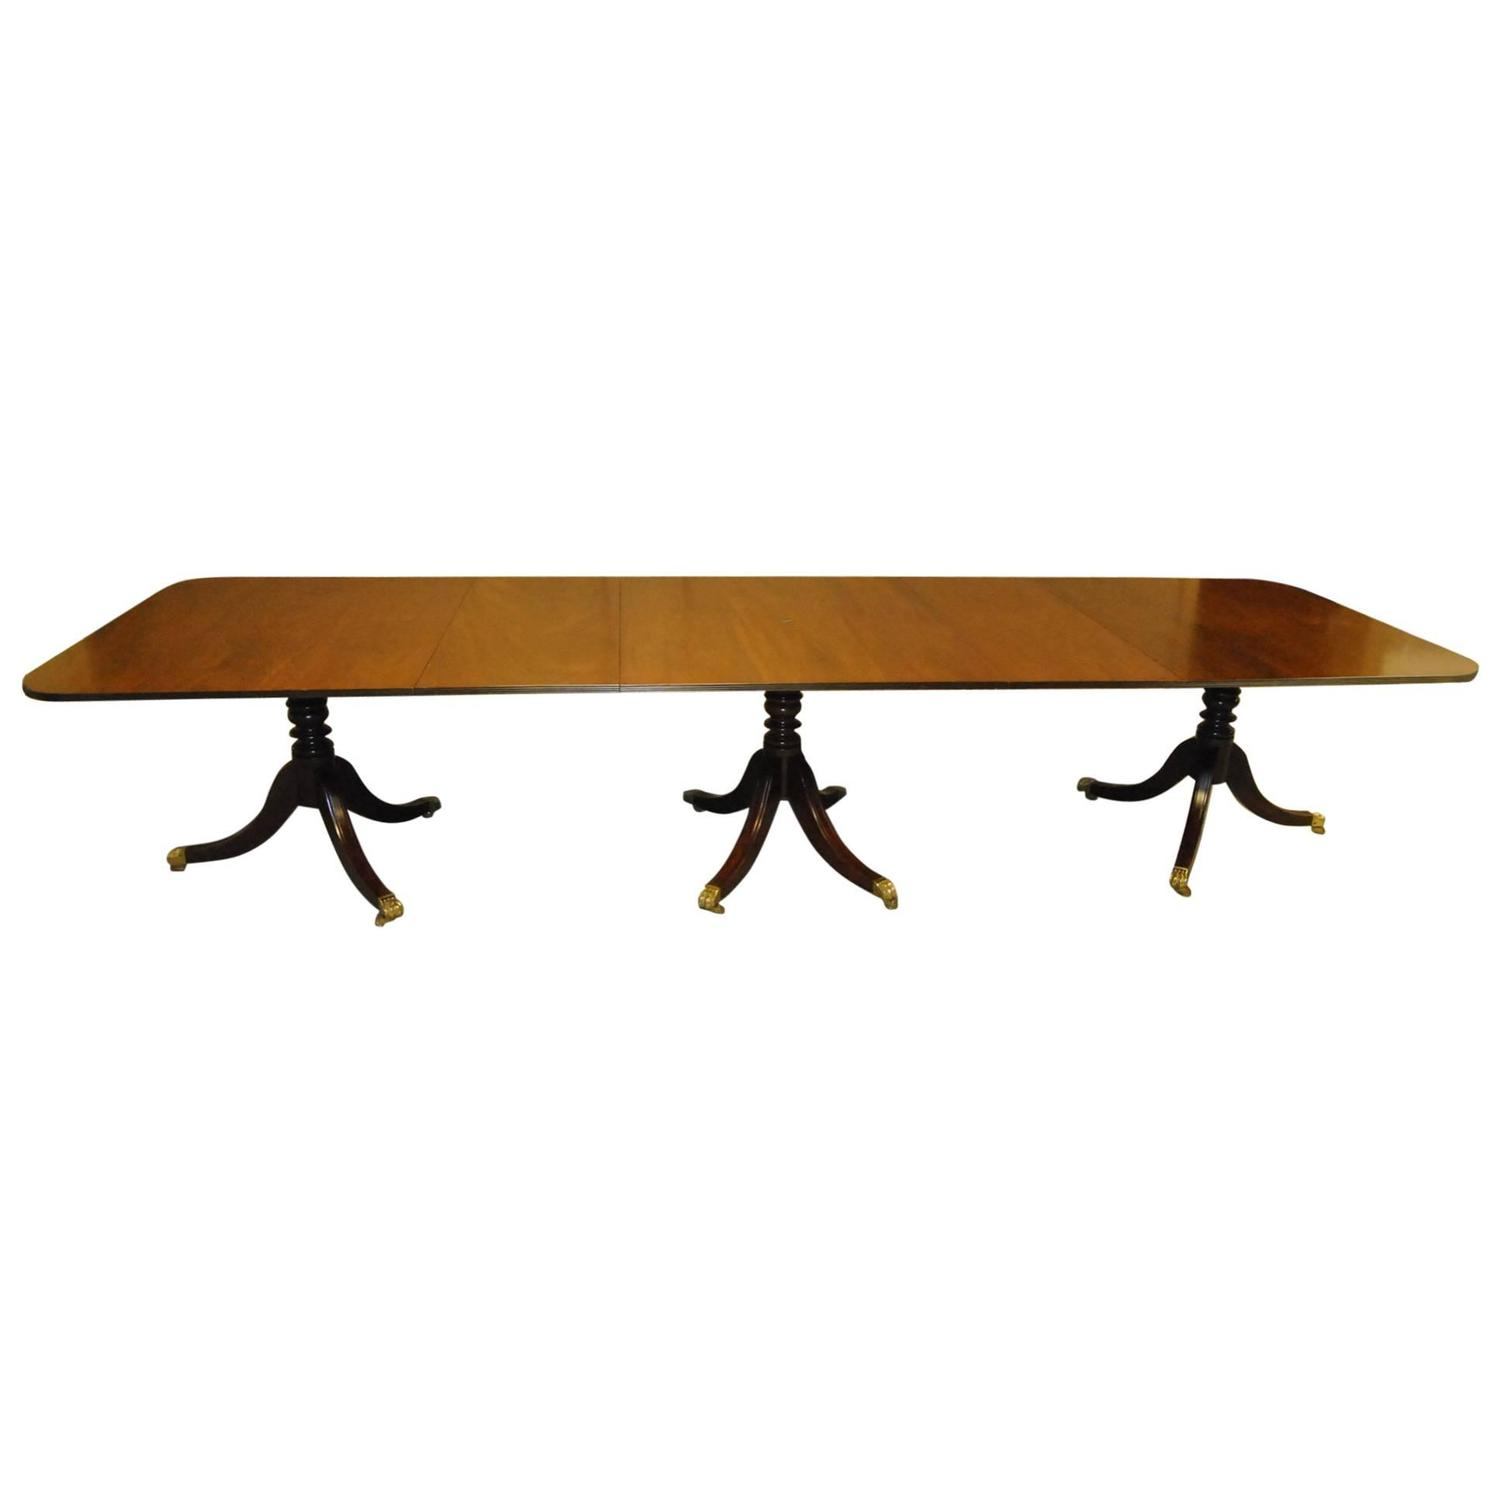 18th Century Style Mahogany Conference Table by Kittinger 12